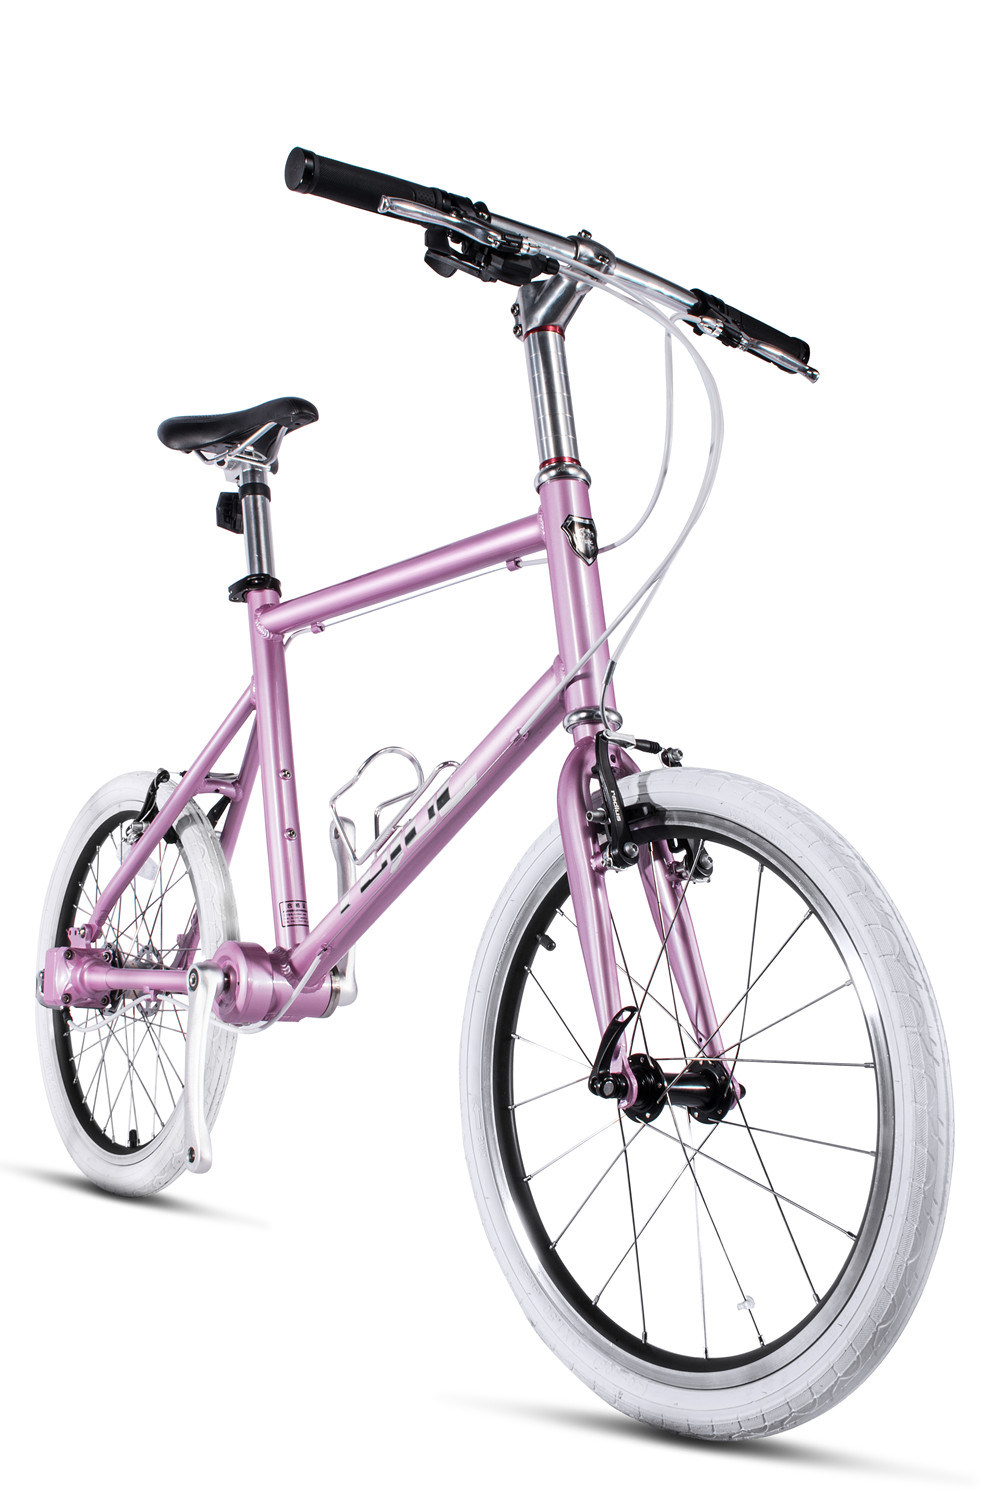 Wholesale Bicycles 26 Inch Shaft Drive Touring Bikes Chainless Inner 7-Speed for Trip High Price Bicycel Bicycle Themed Gift